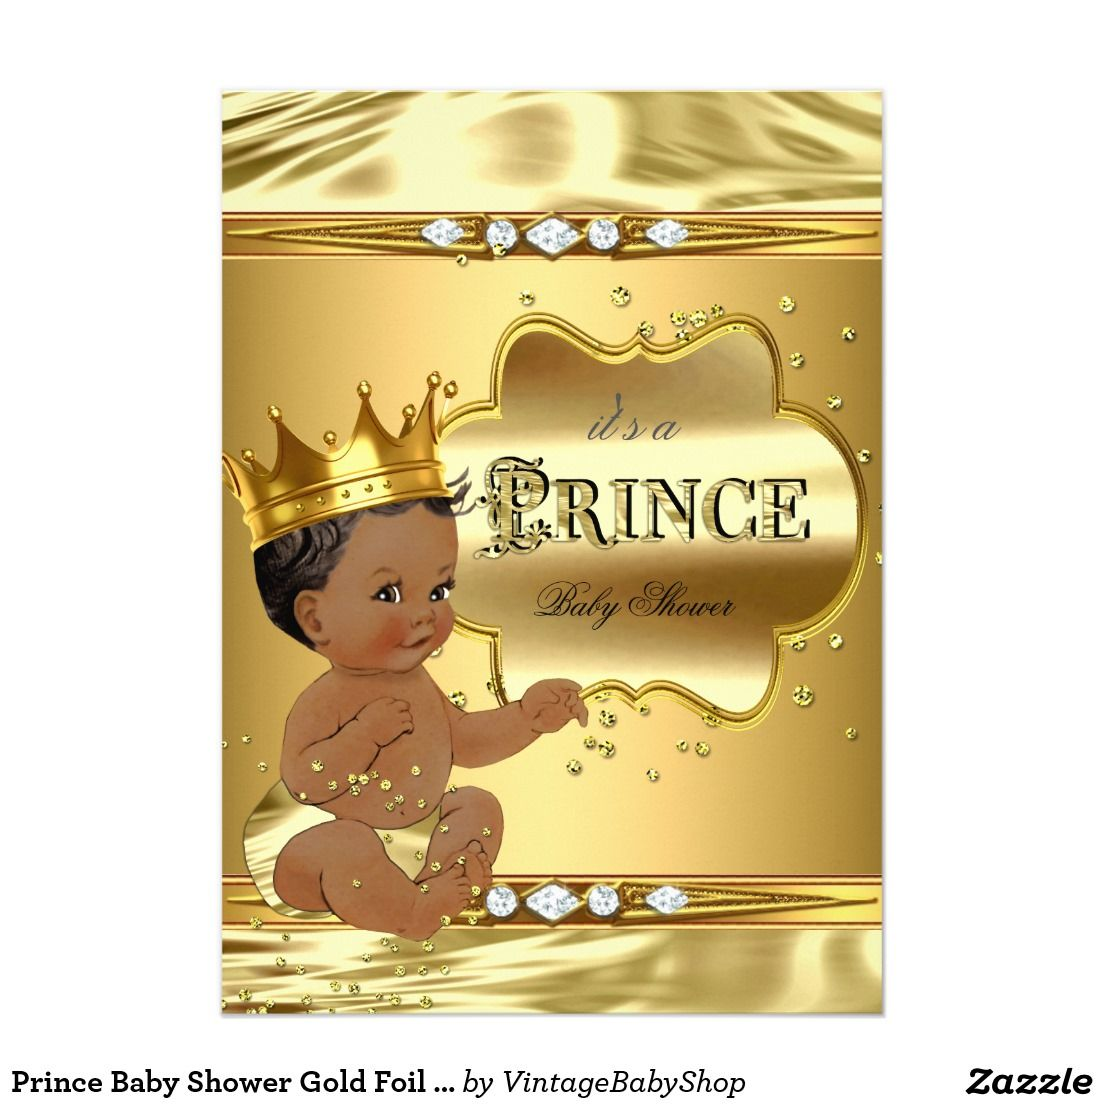 Prince Baby Shower Gold Foil Ethnic Baby Boy 5x7 Paper Invitation ...